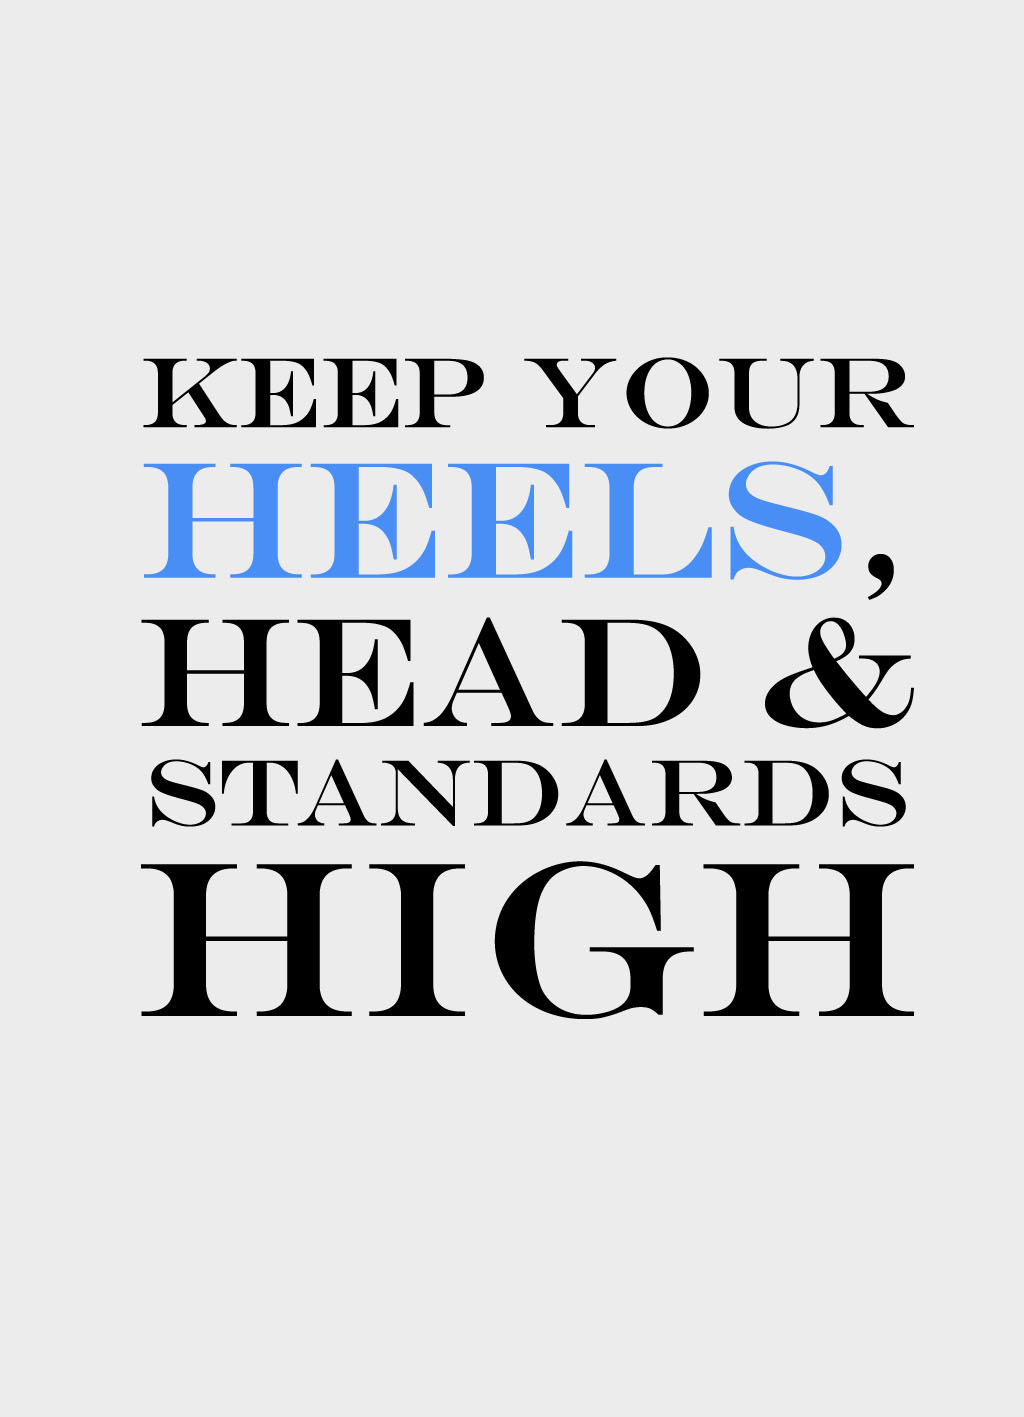 Quote of the Day :: Keep your heels, head & standards high